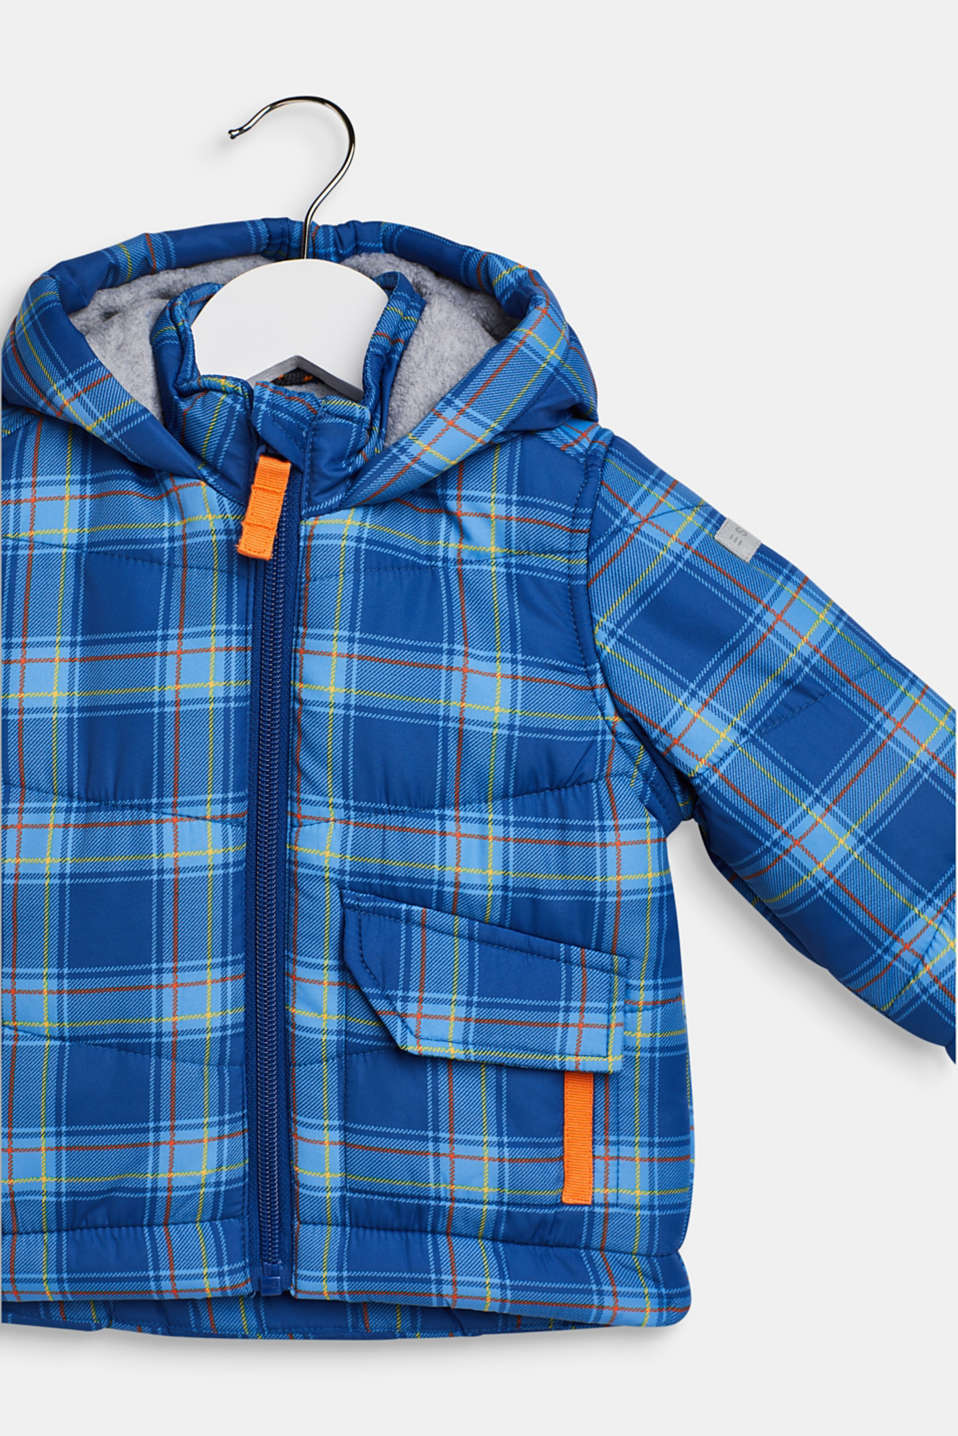 Padded check jacket with fleece lining, LCINDIGO, detail image number 2